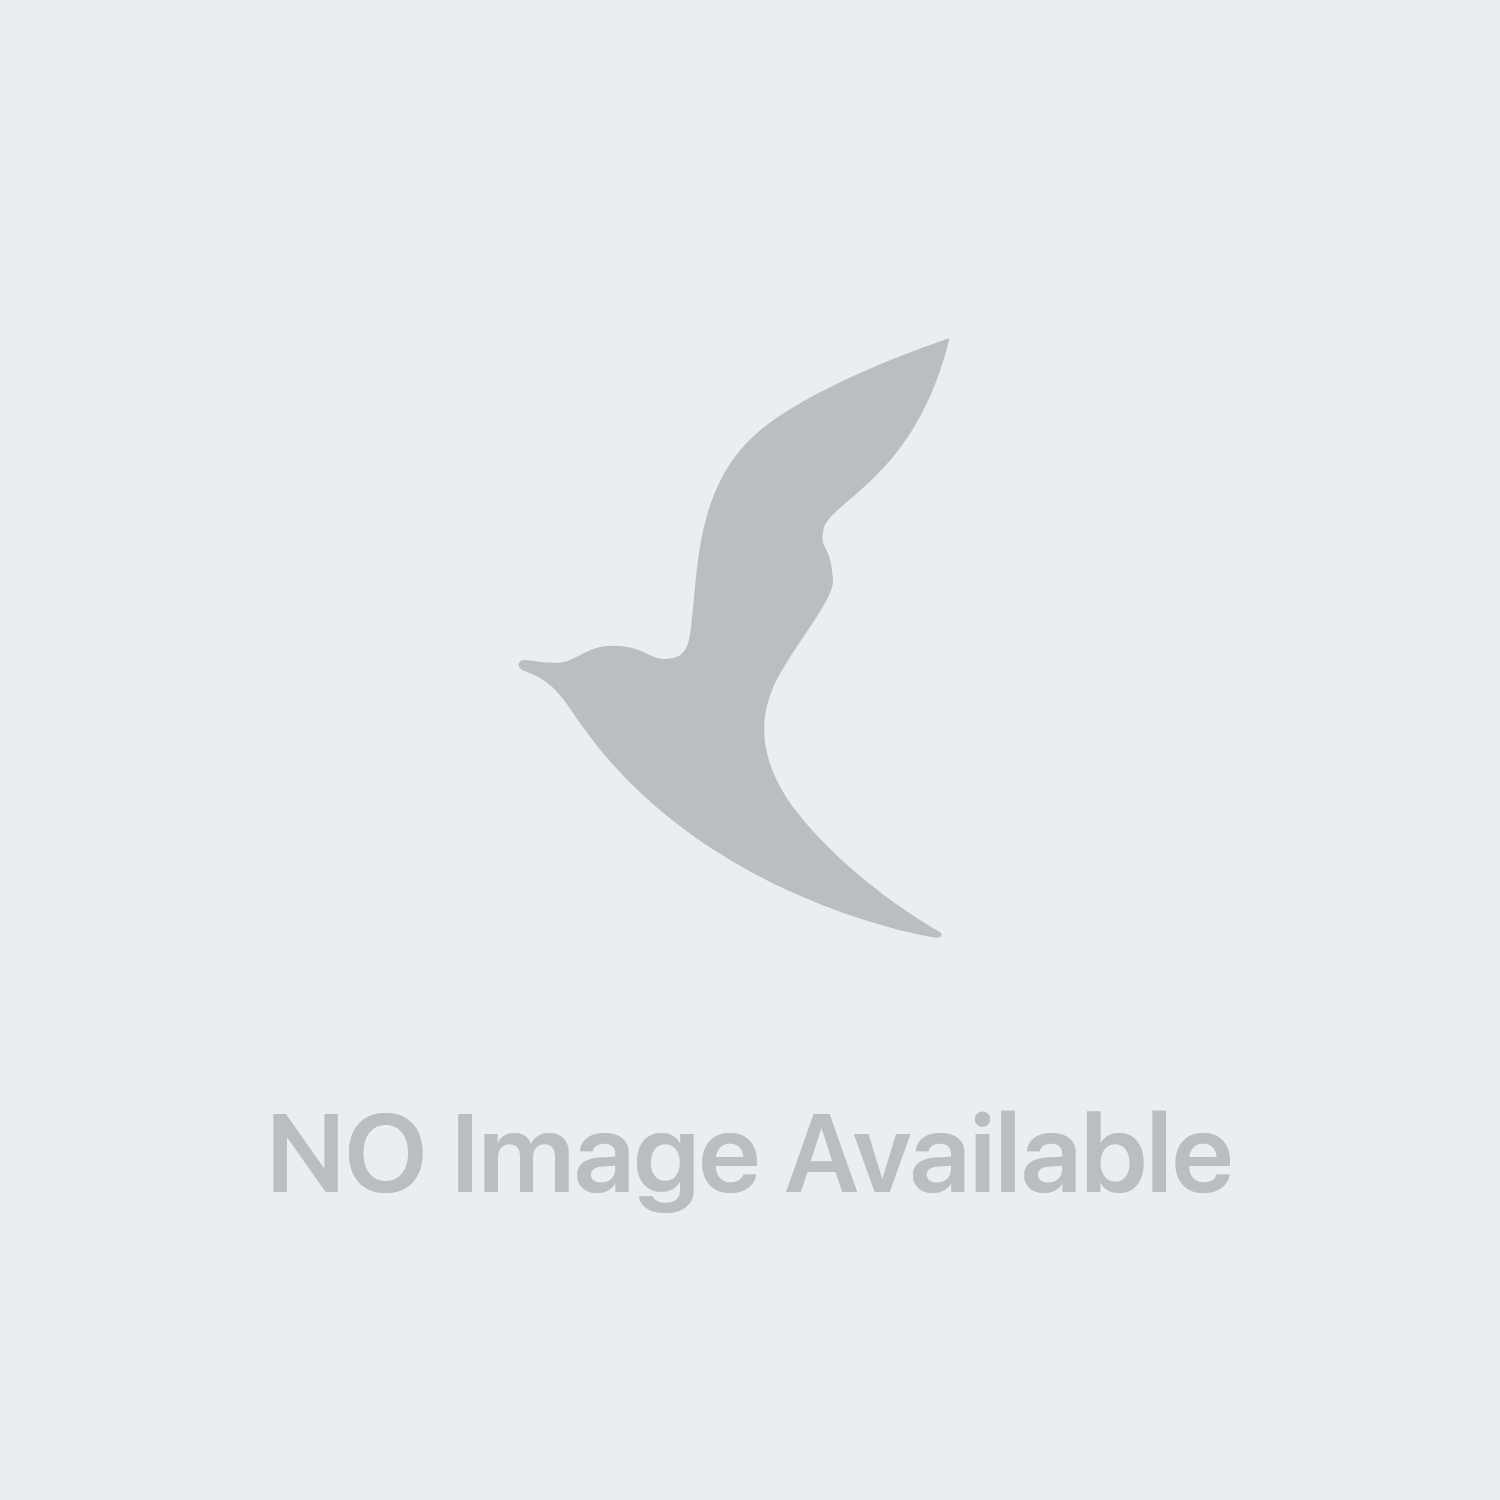 Fifty Well Integratore 40 Capsule